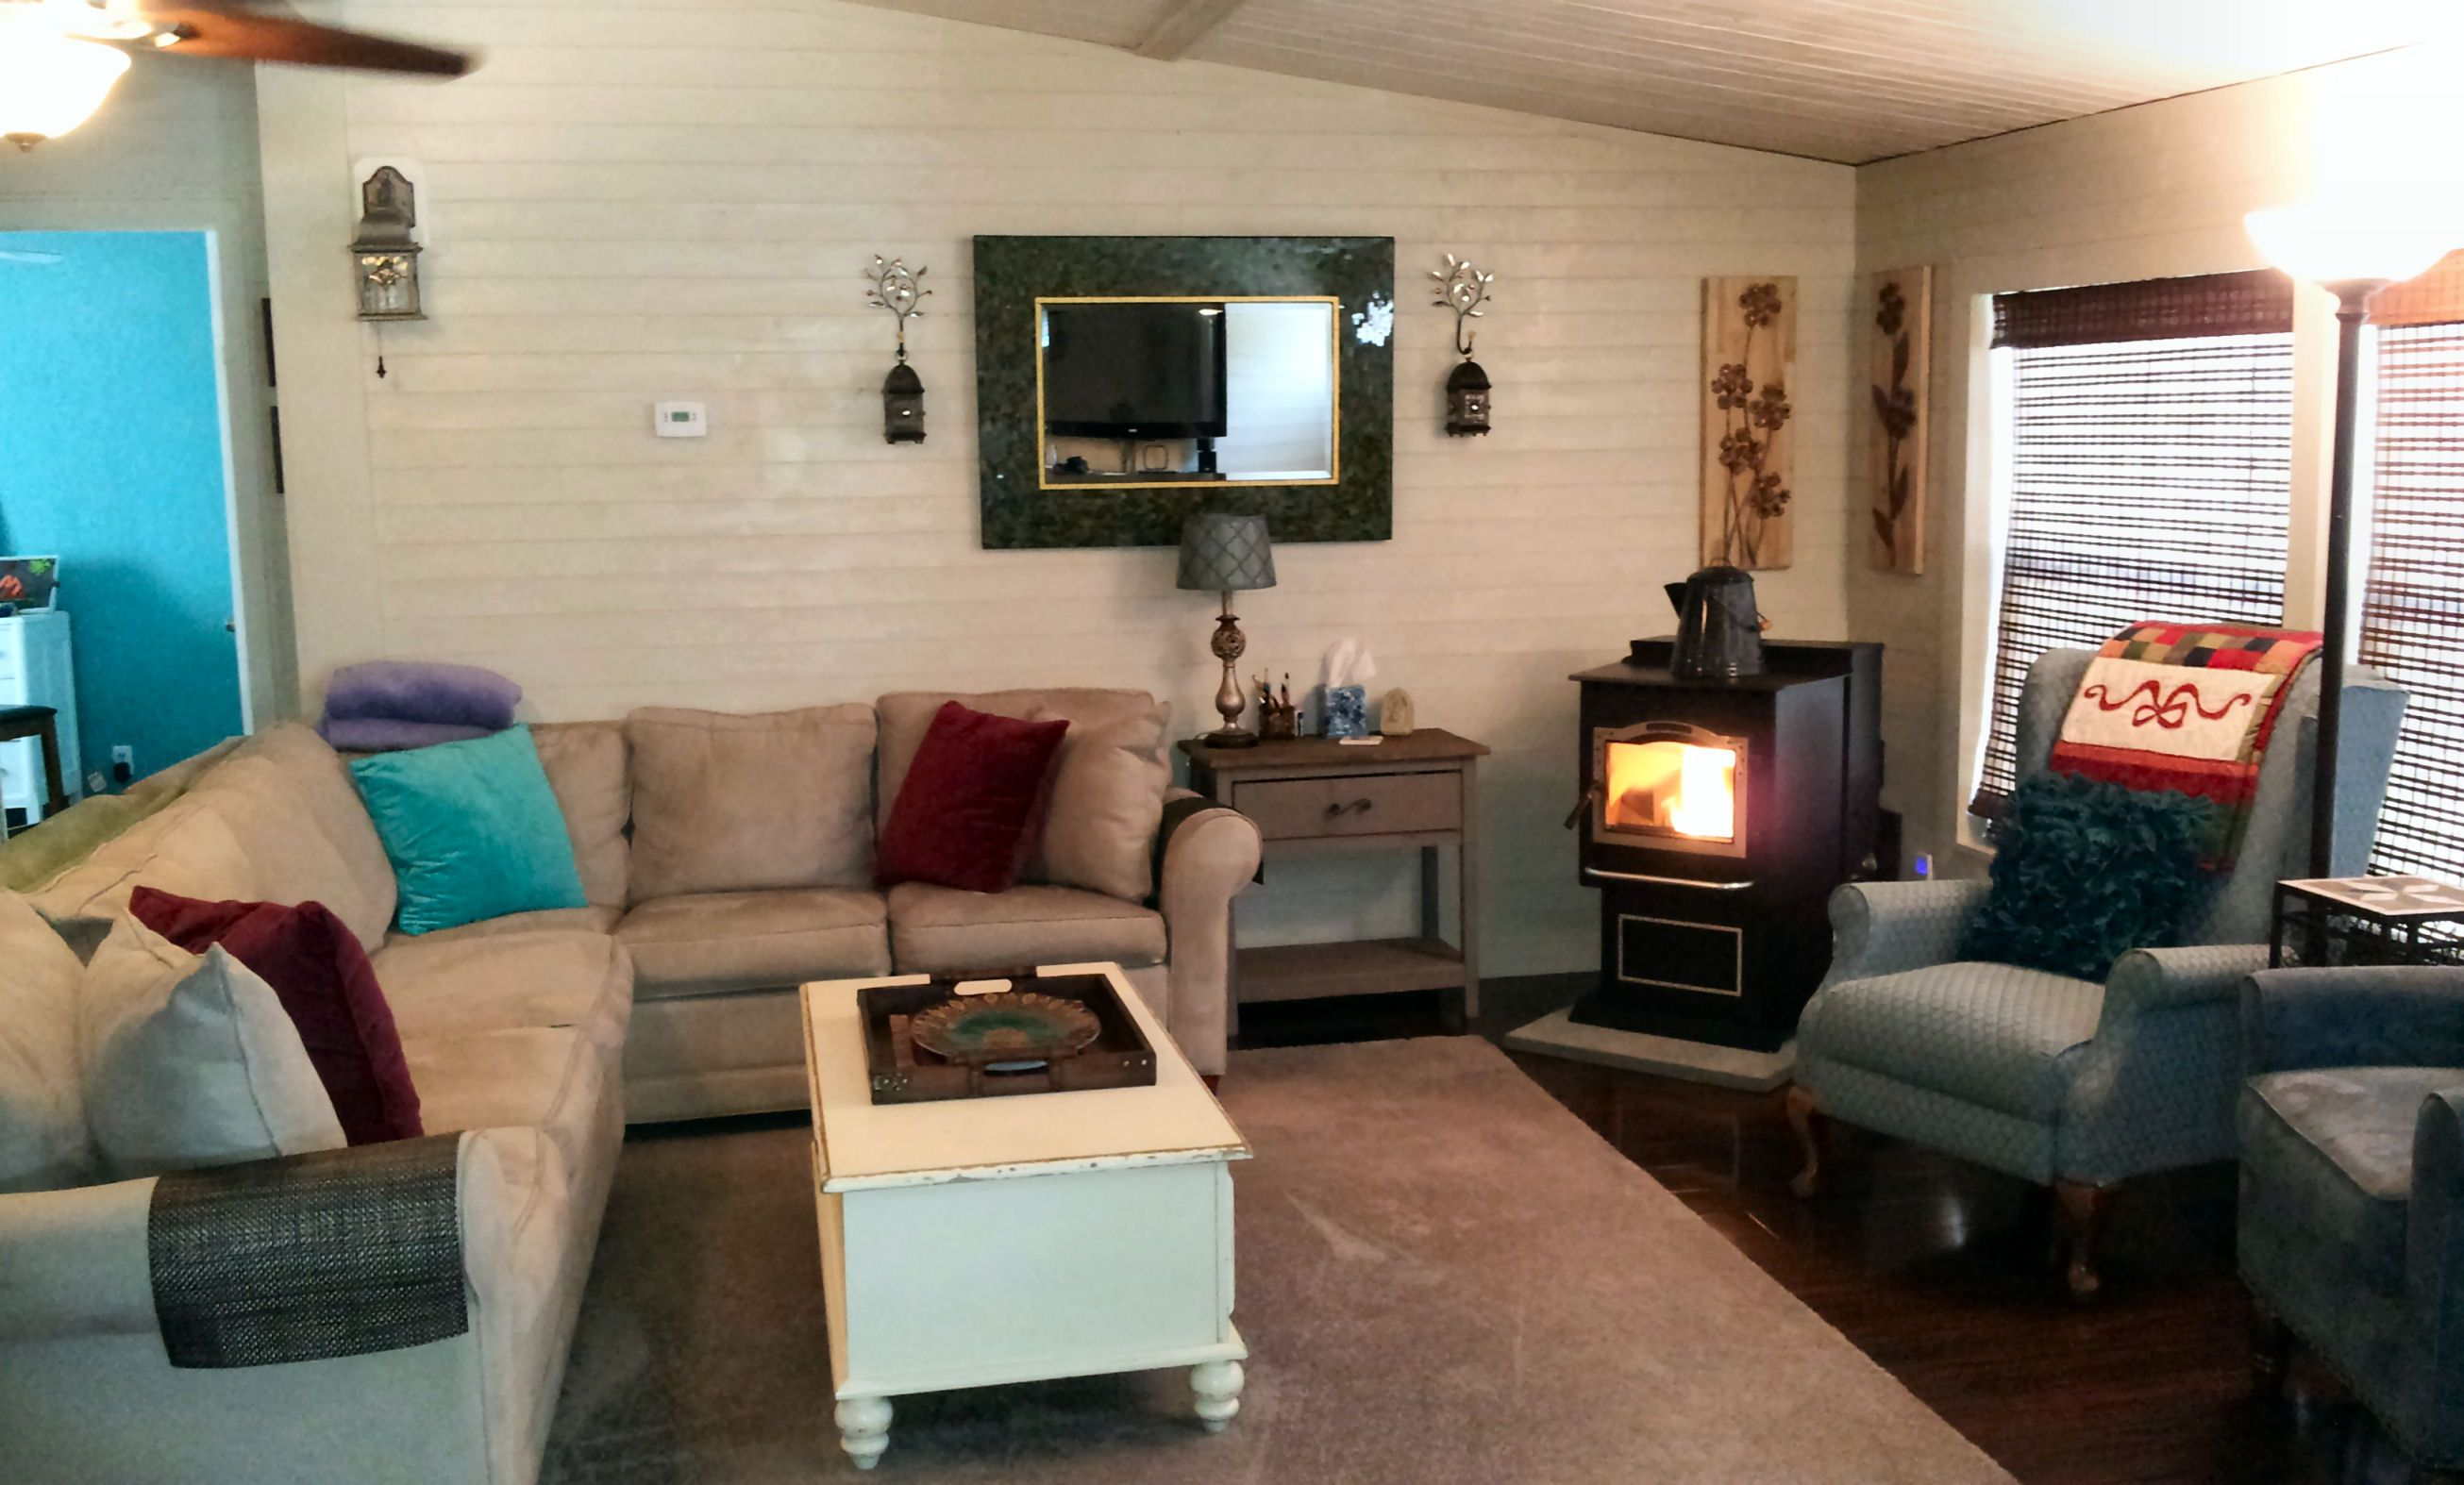 Image Result For Small Ranch Trailer Living Room Ideas Living Room Remodel Mobile Home Living Living Room Style Mobile home living room remodel ideas